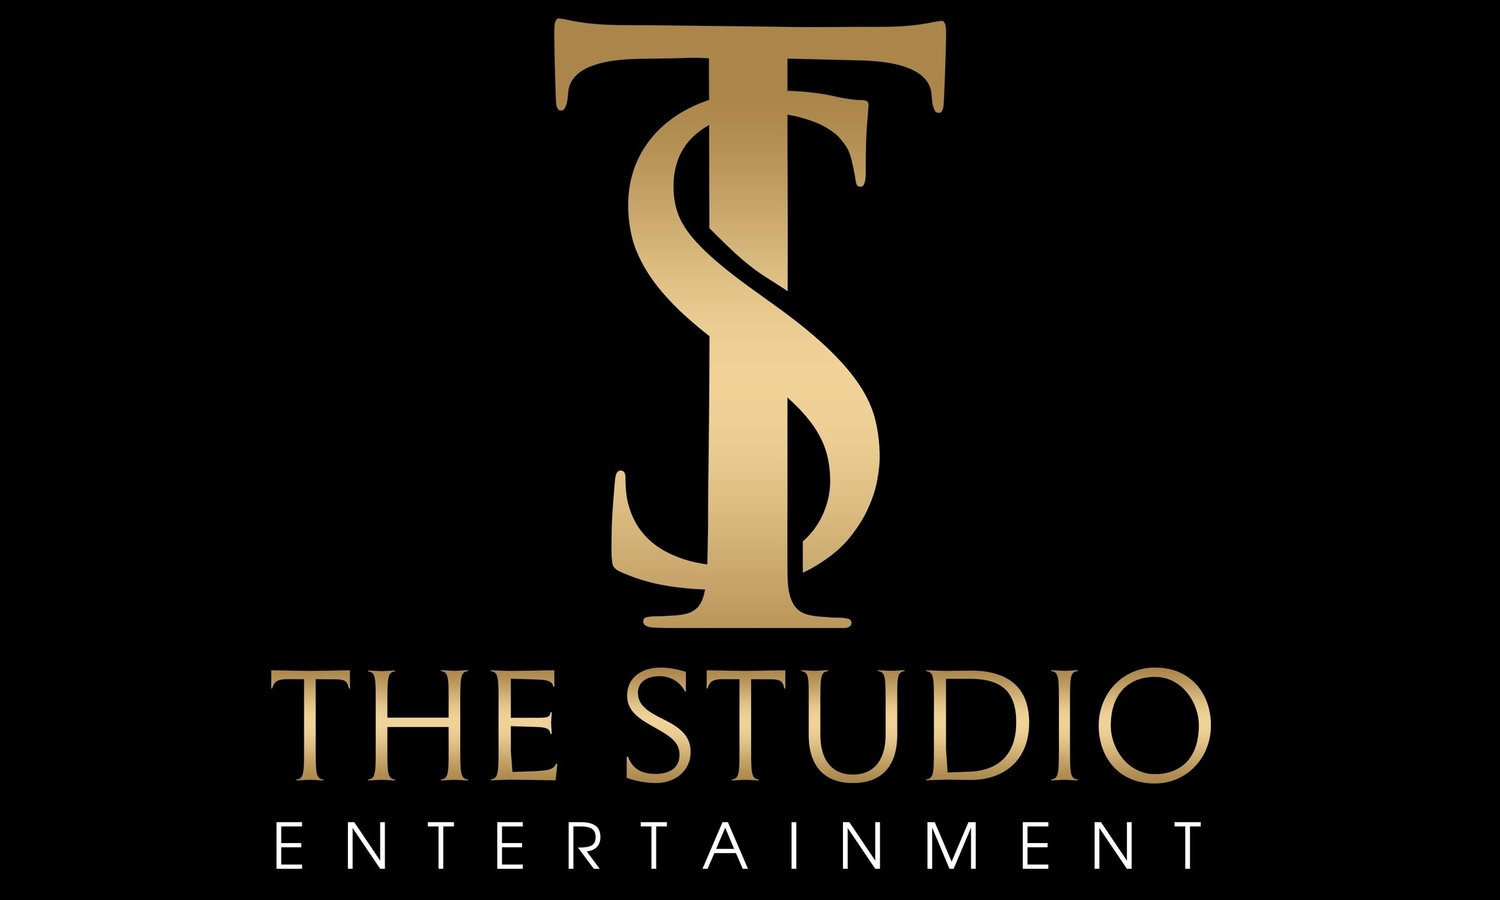 THE STUDIO ENTERTAINMENT